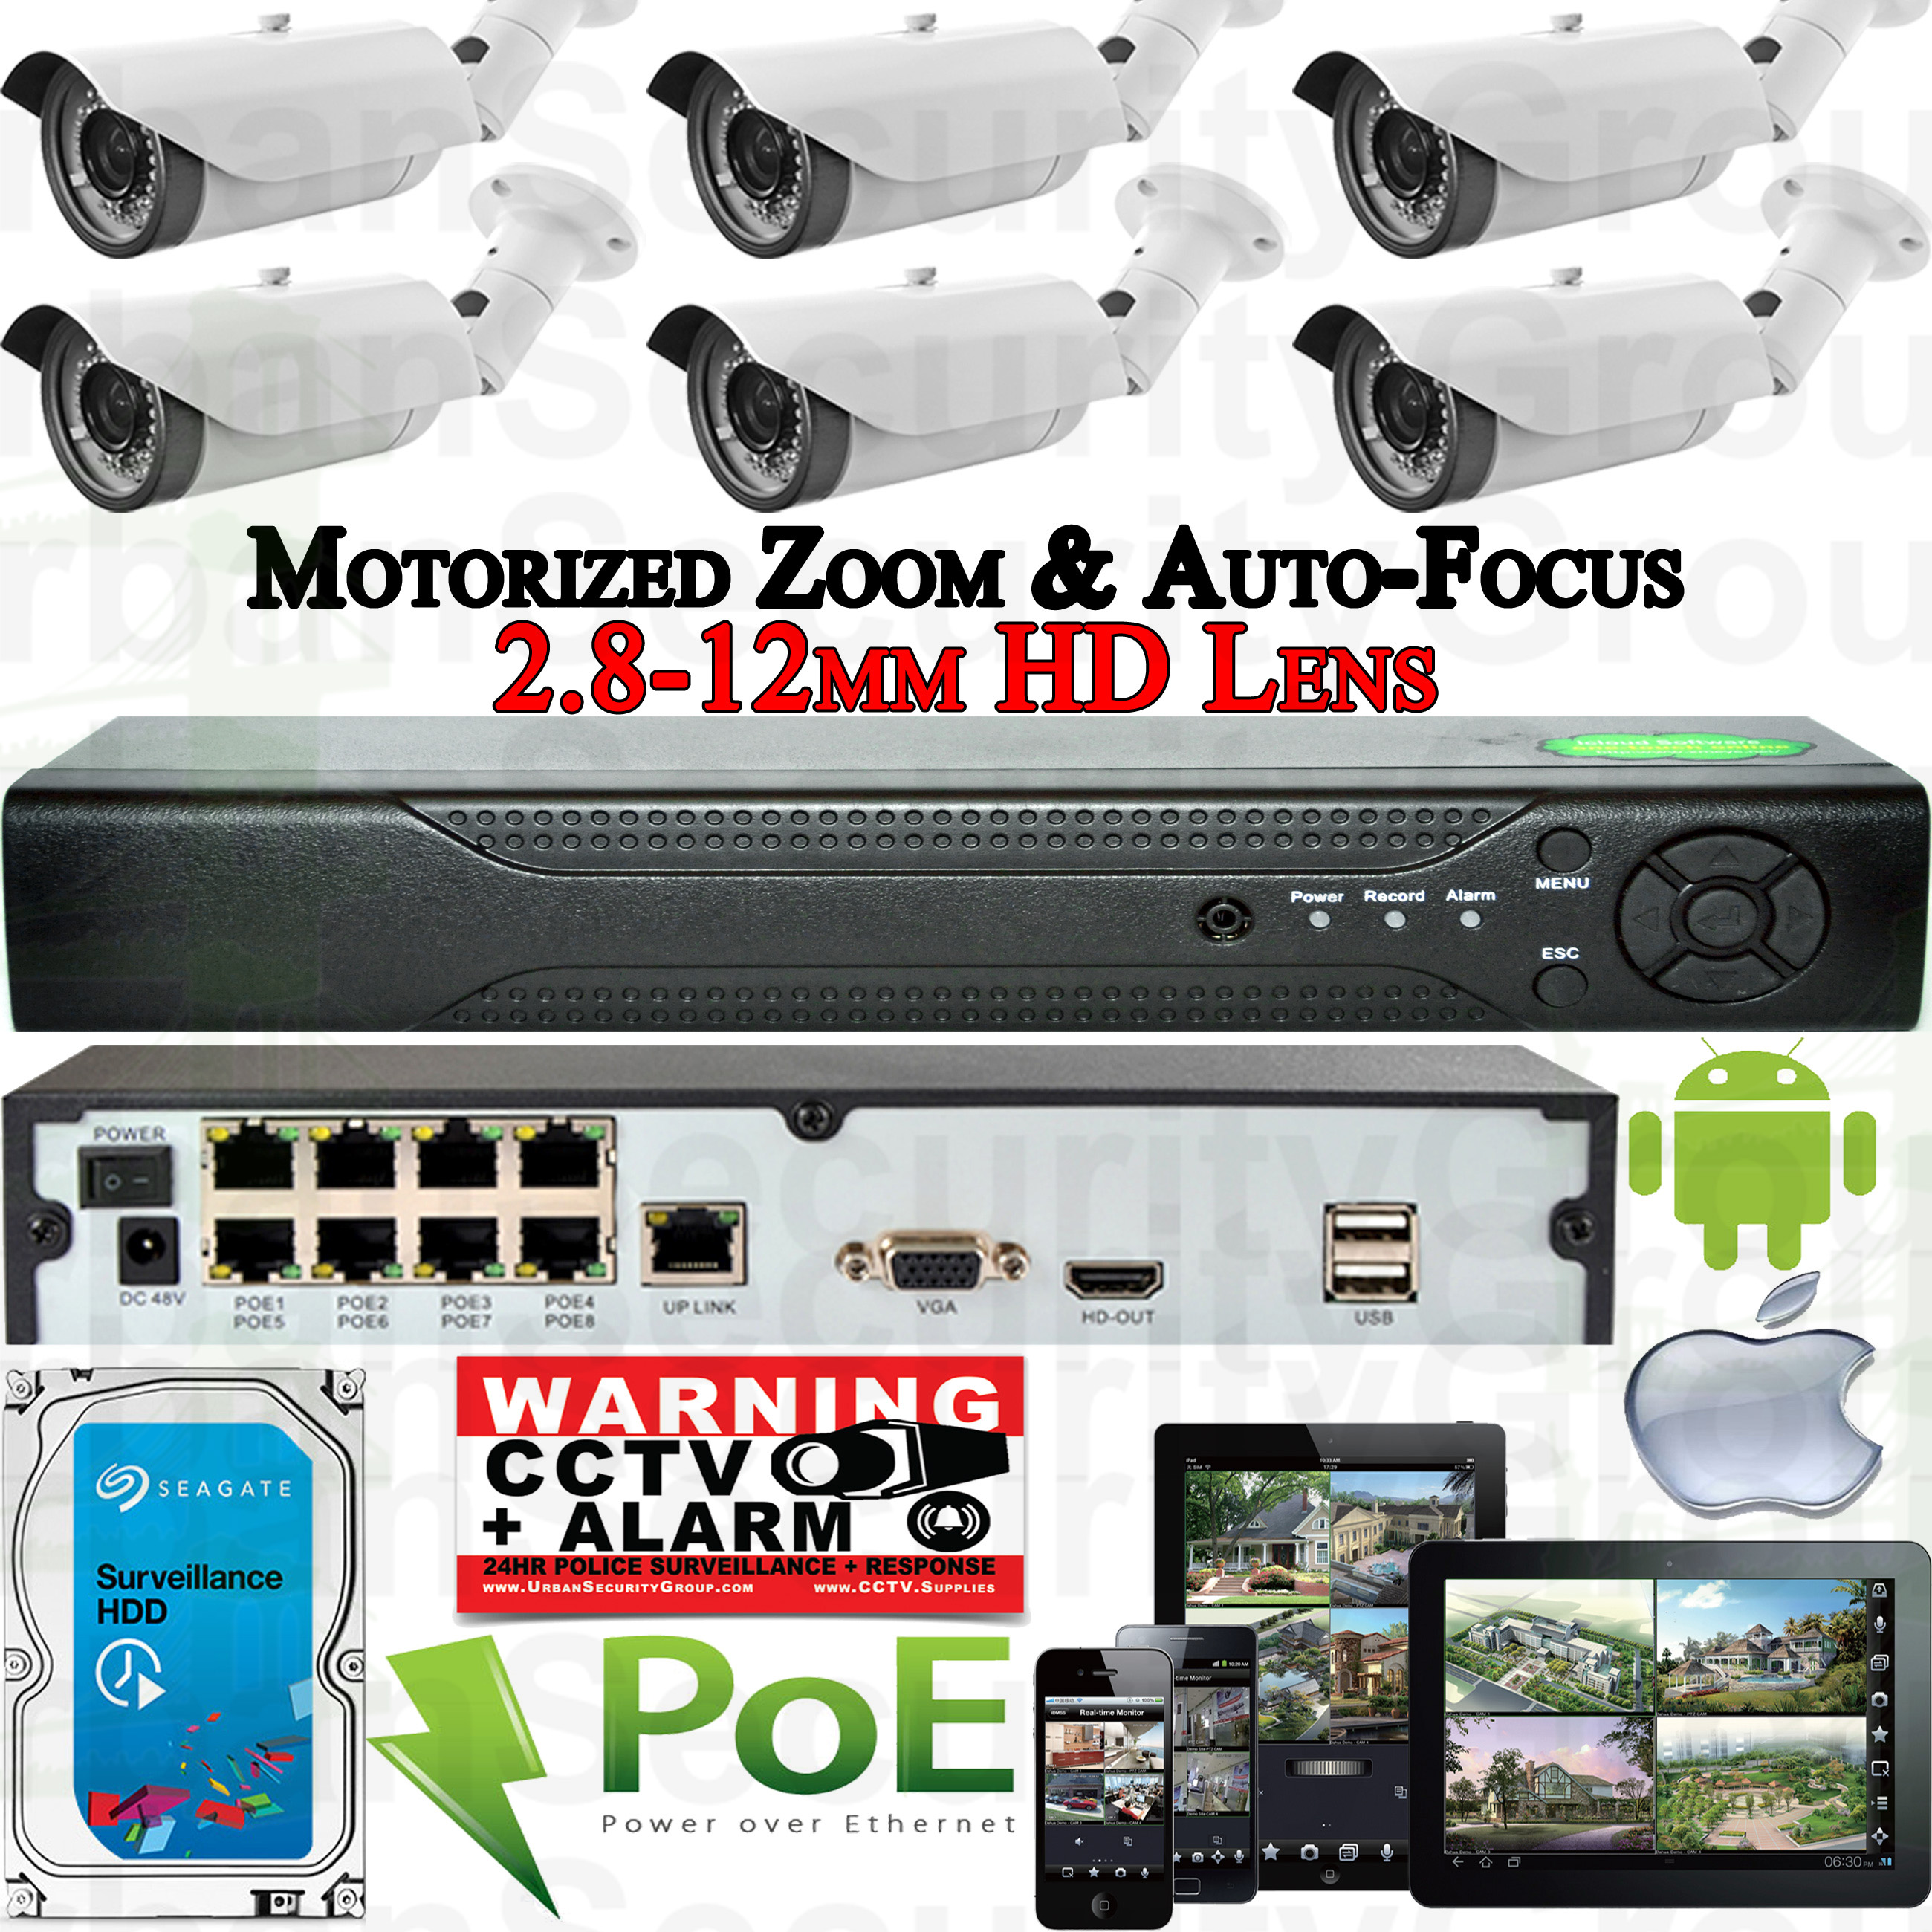 USG Sony Chip 6 Camera Motorized Lens Remote Zoom & Auto-Focus IP PoE Security System CCTV Kit * 6x 1080p 2mp 2.8-12mm Bullet Cameras + 1x 8 Channel 1080P PoE NVR + 1x 4TB HDD * FREE PHONE APP